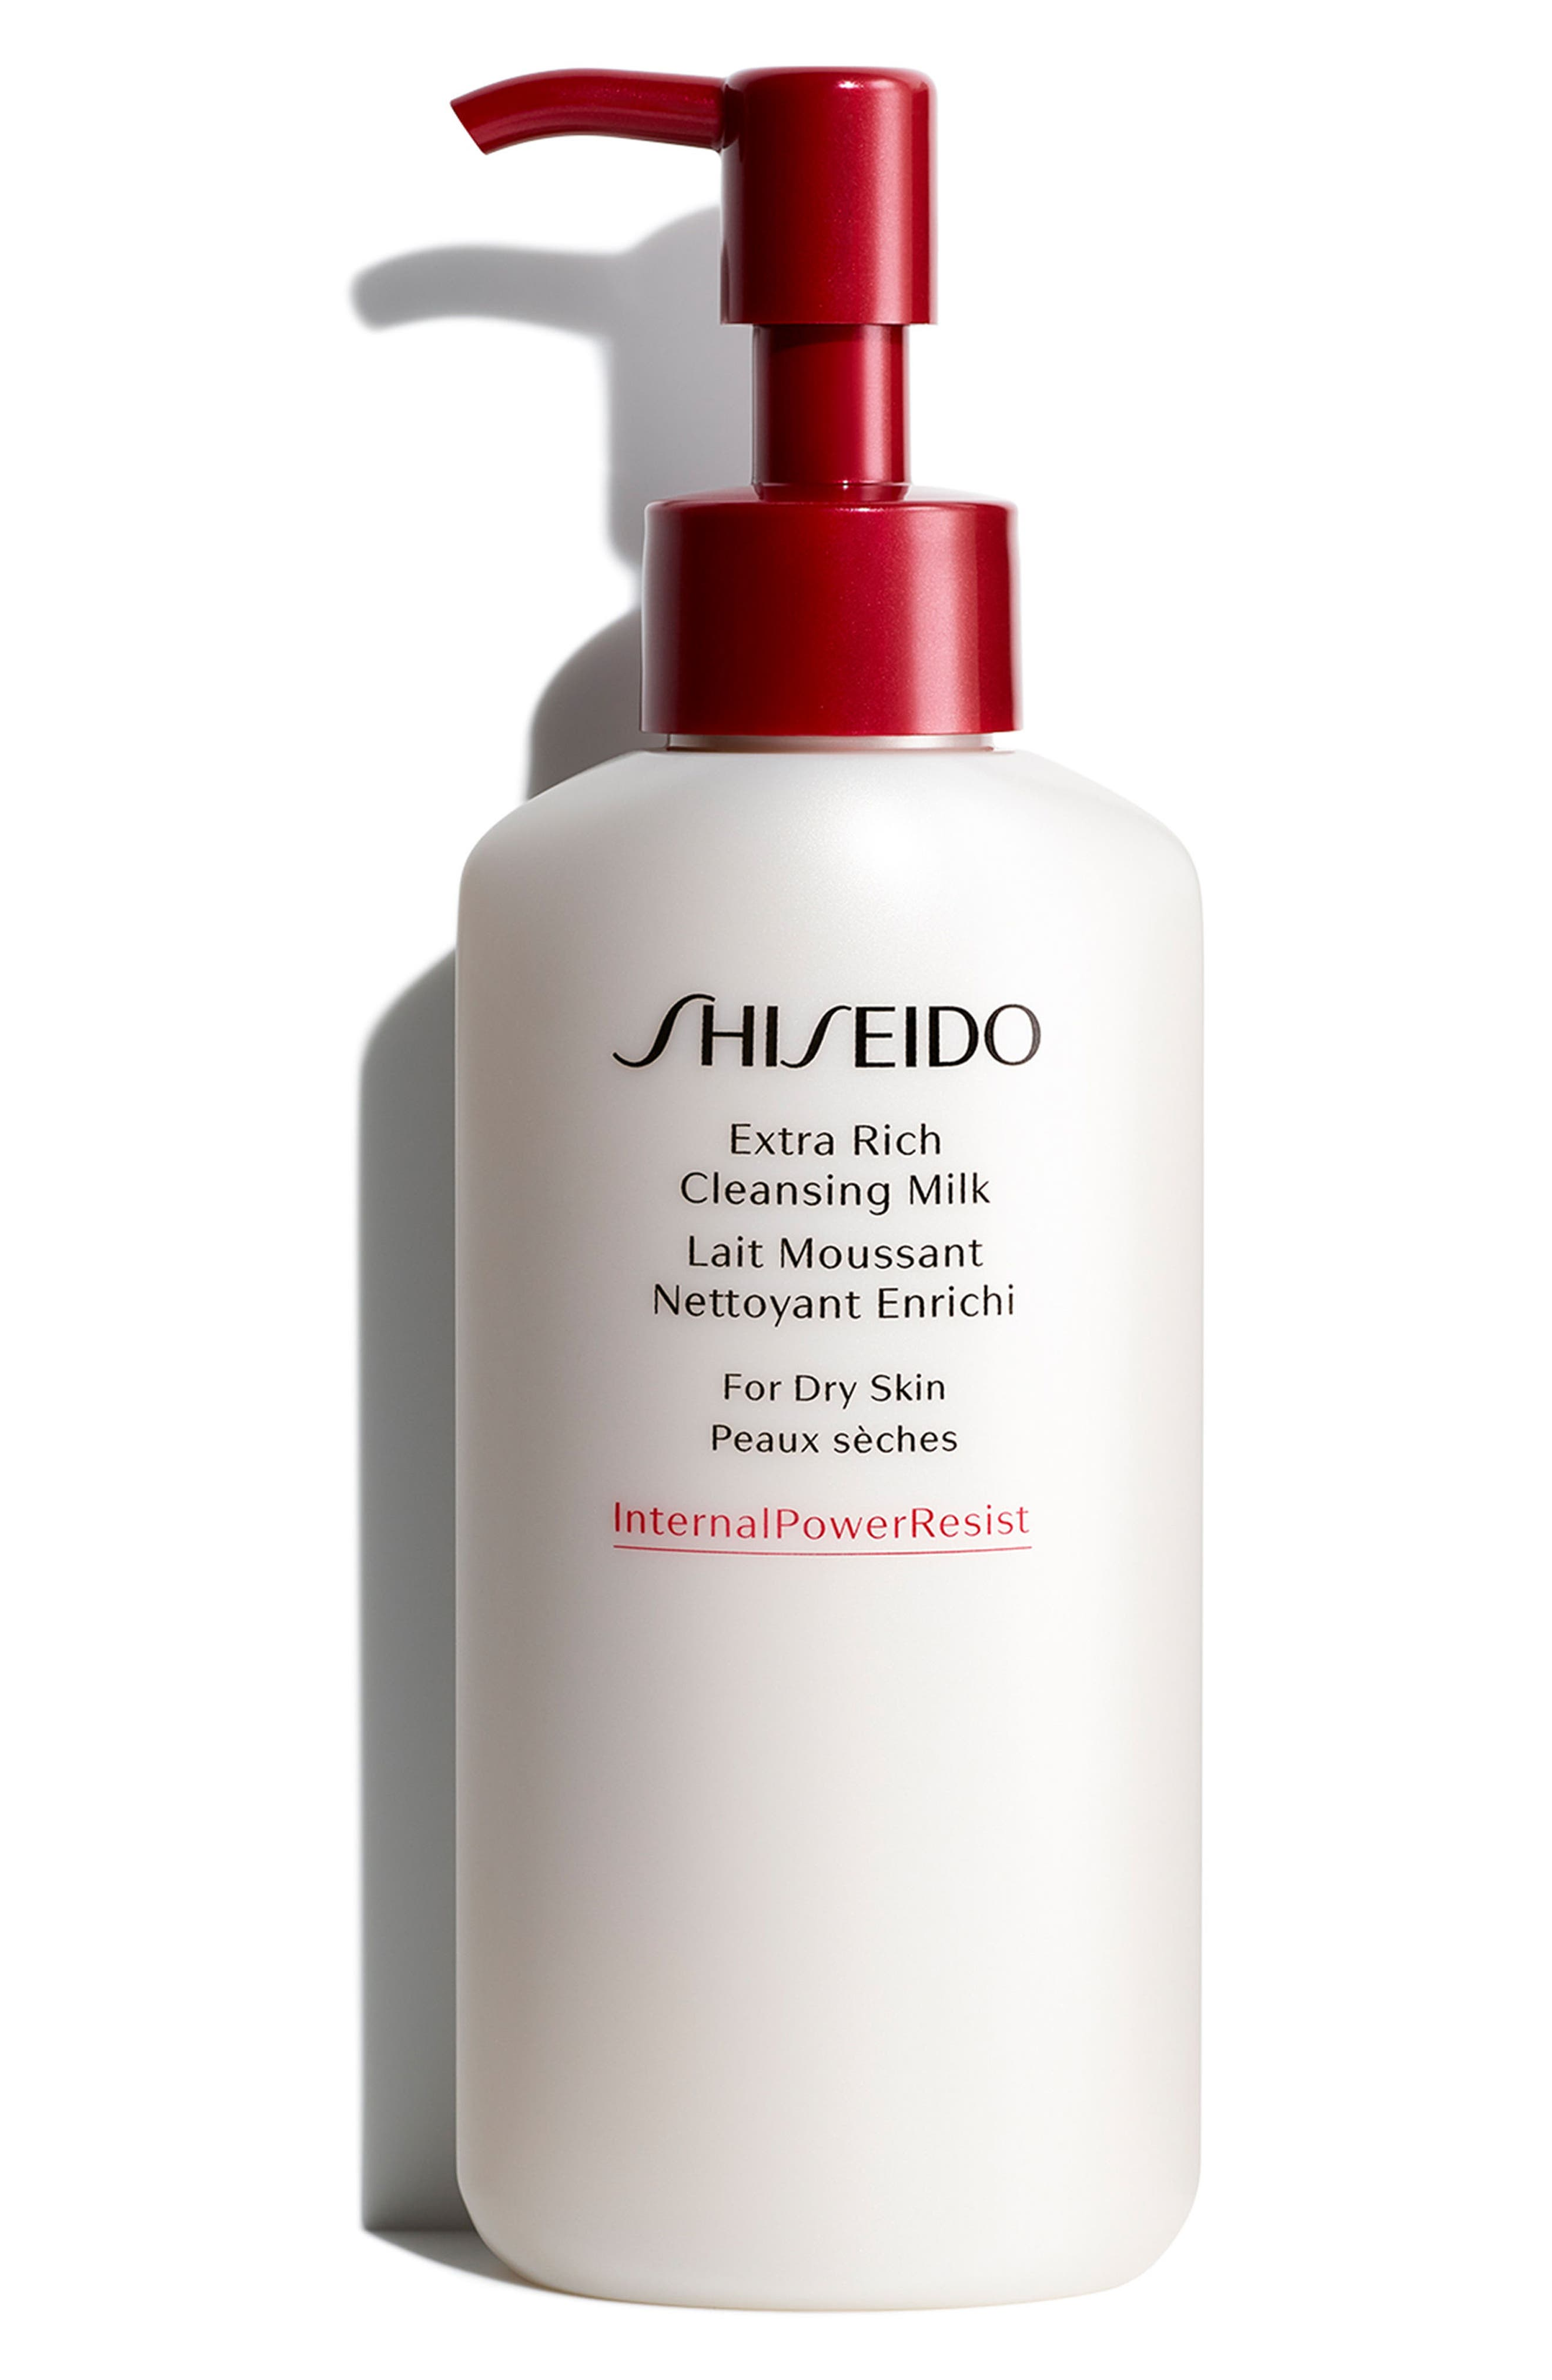 Extra Rich Cleansing Milk by Shiseido